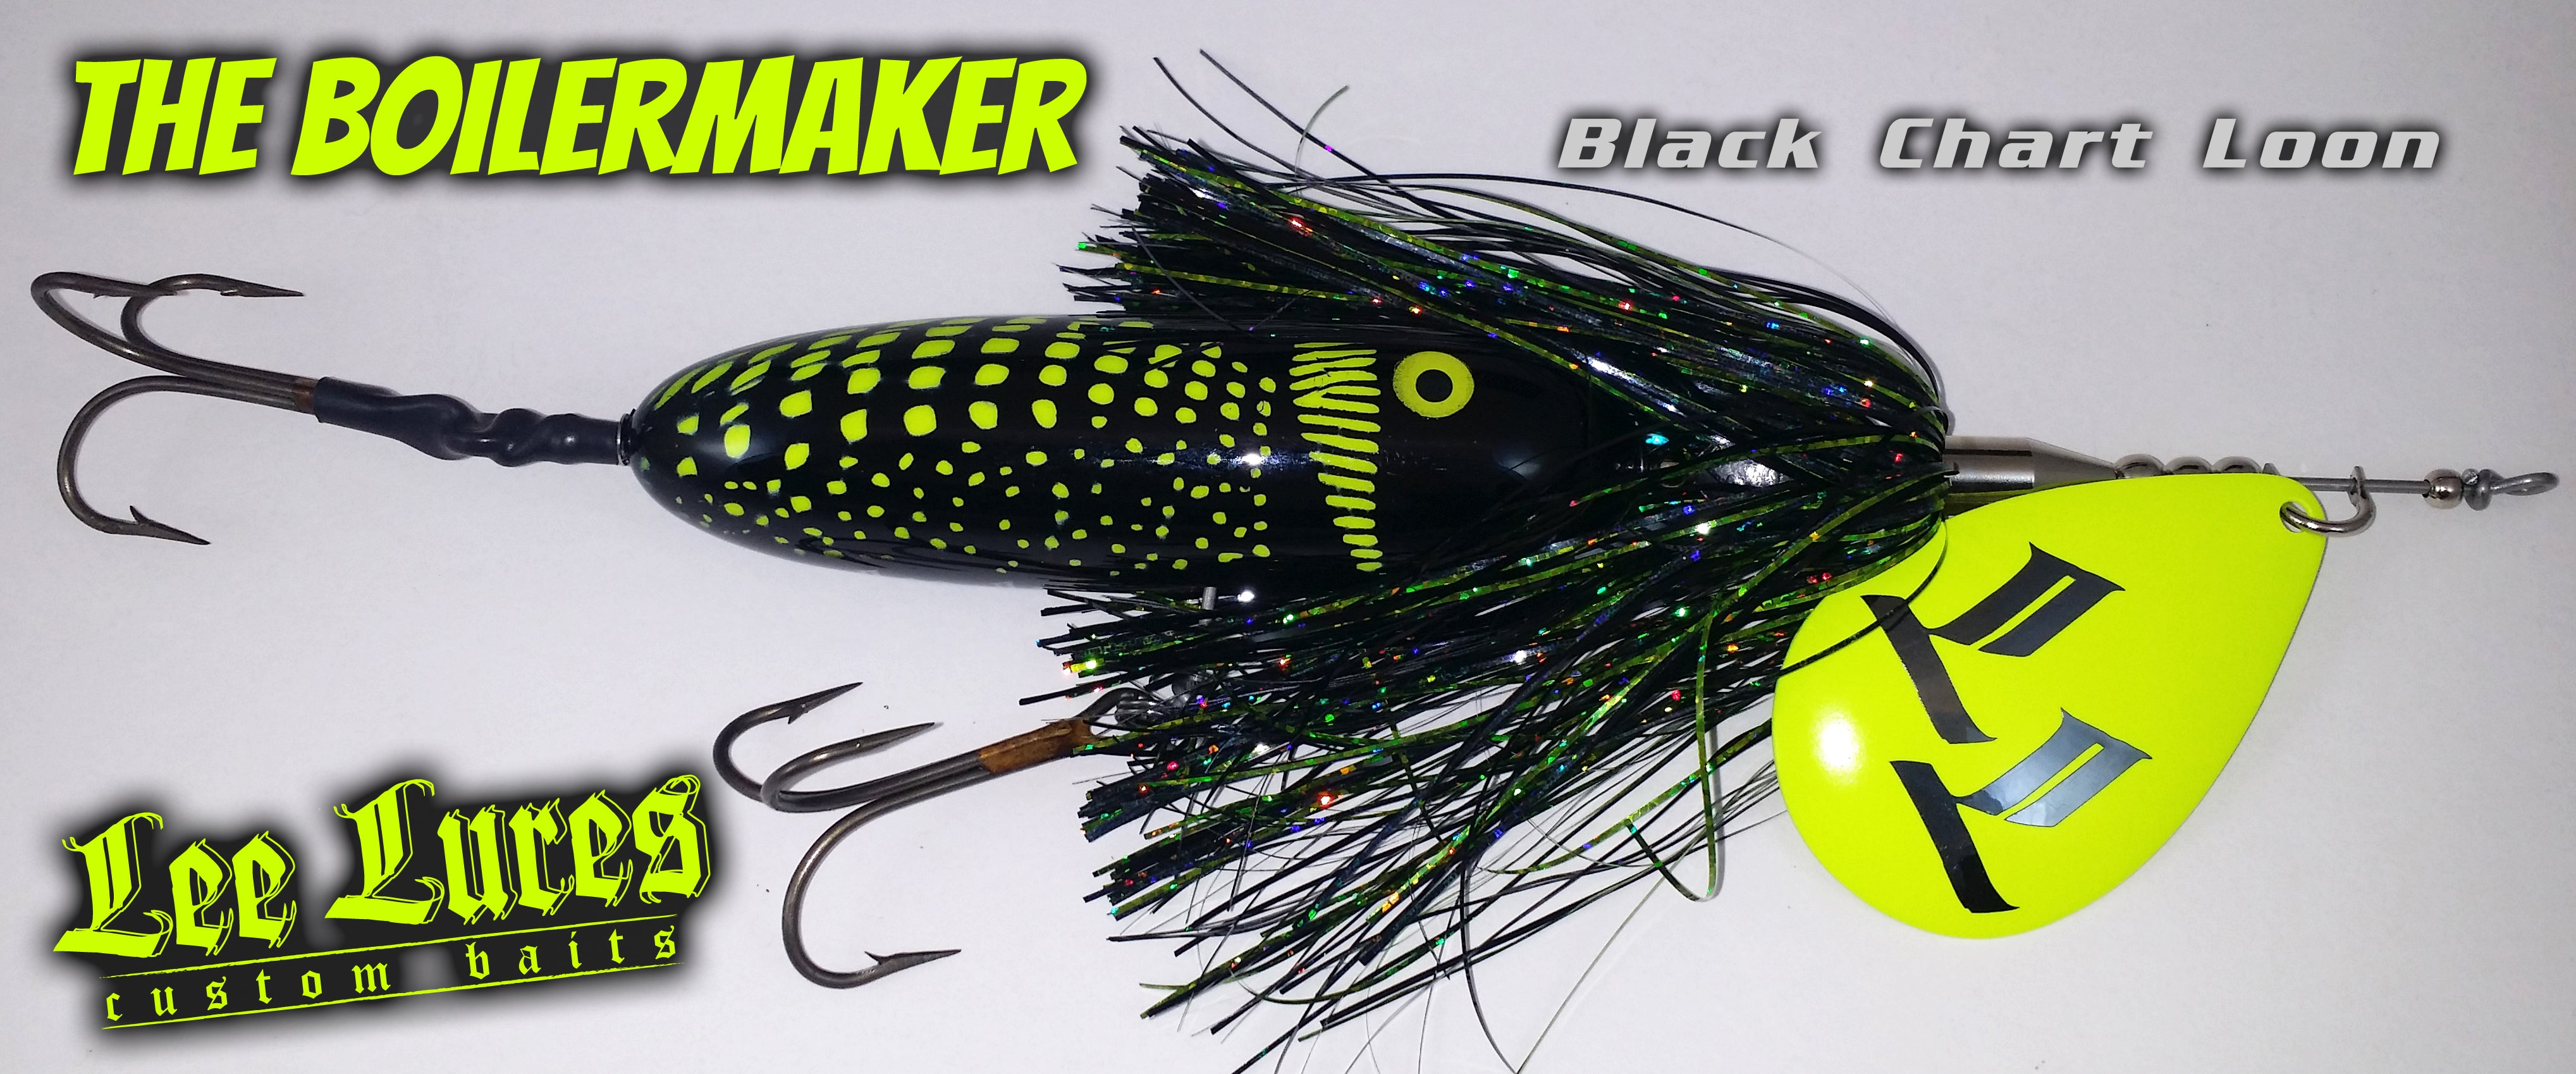 Boilermaker Lee Lures